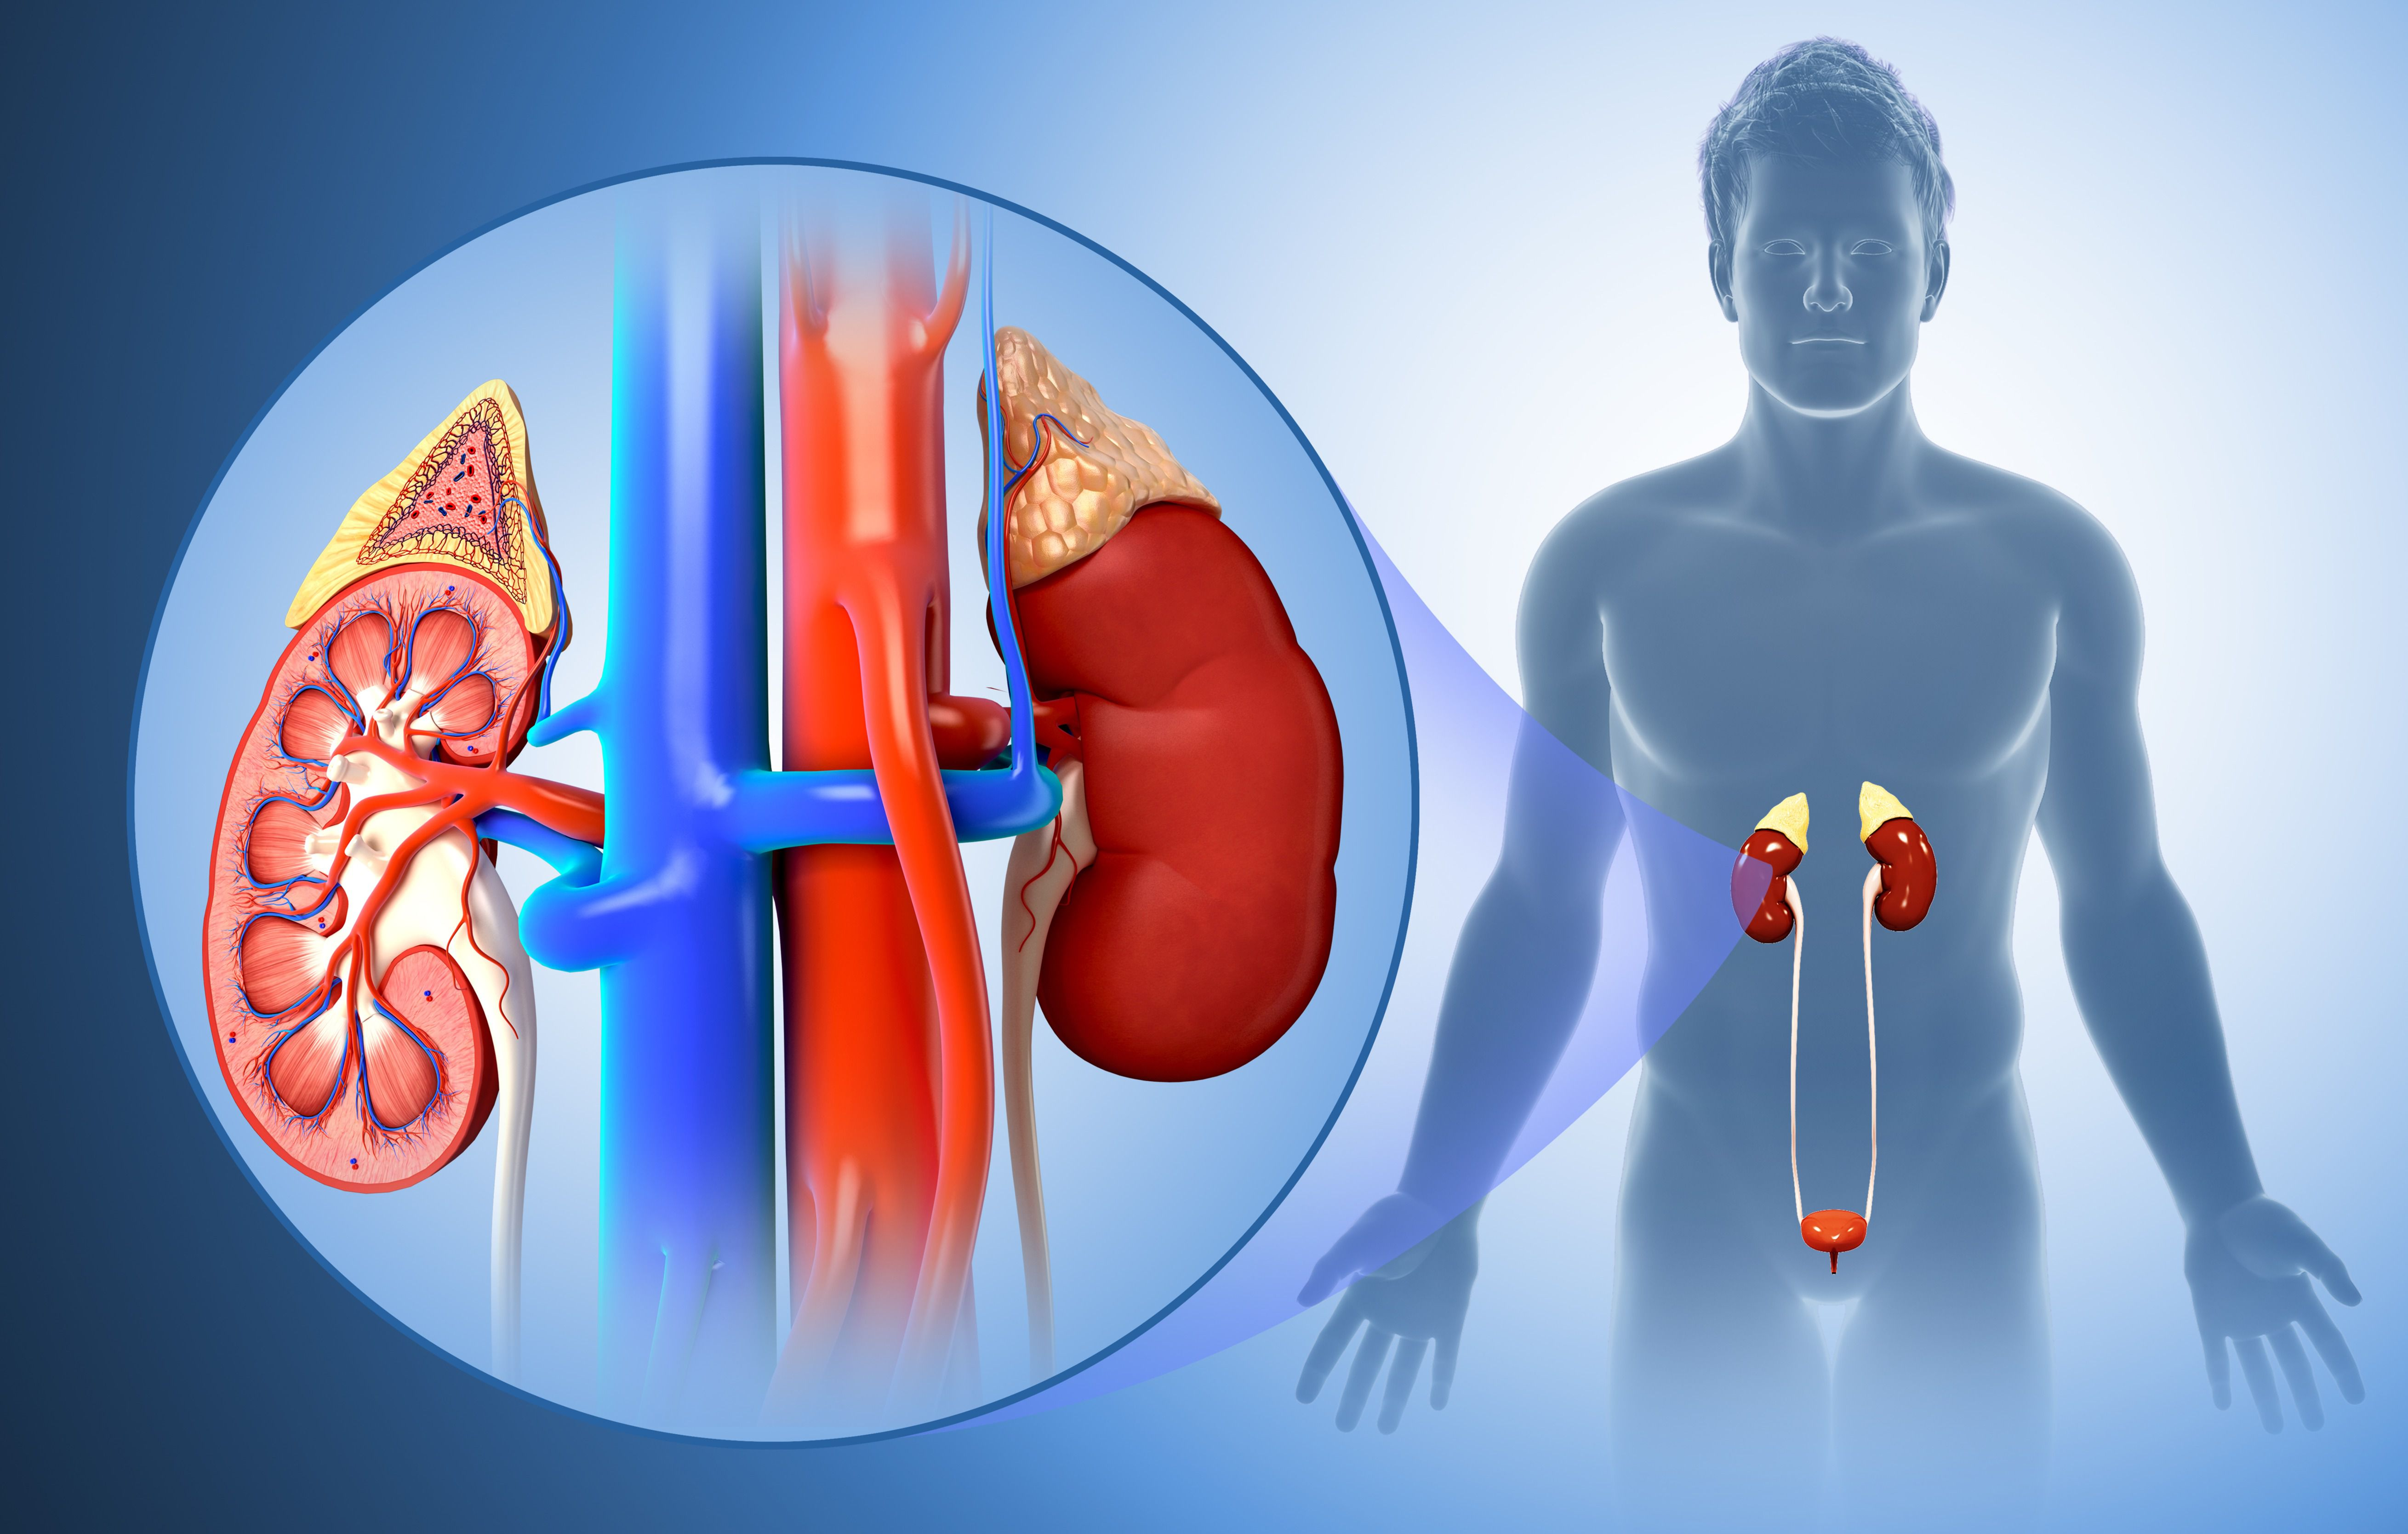 Treatment For Kidney Infection Or Pyelonephritis